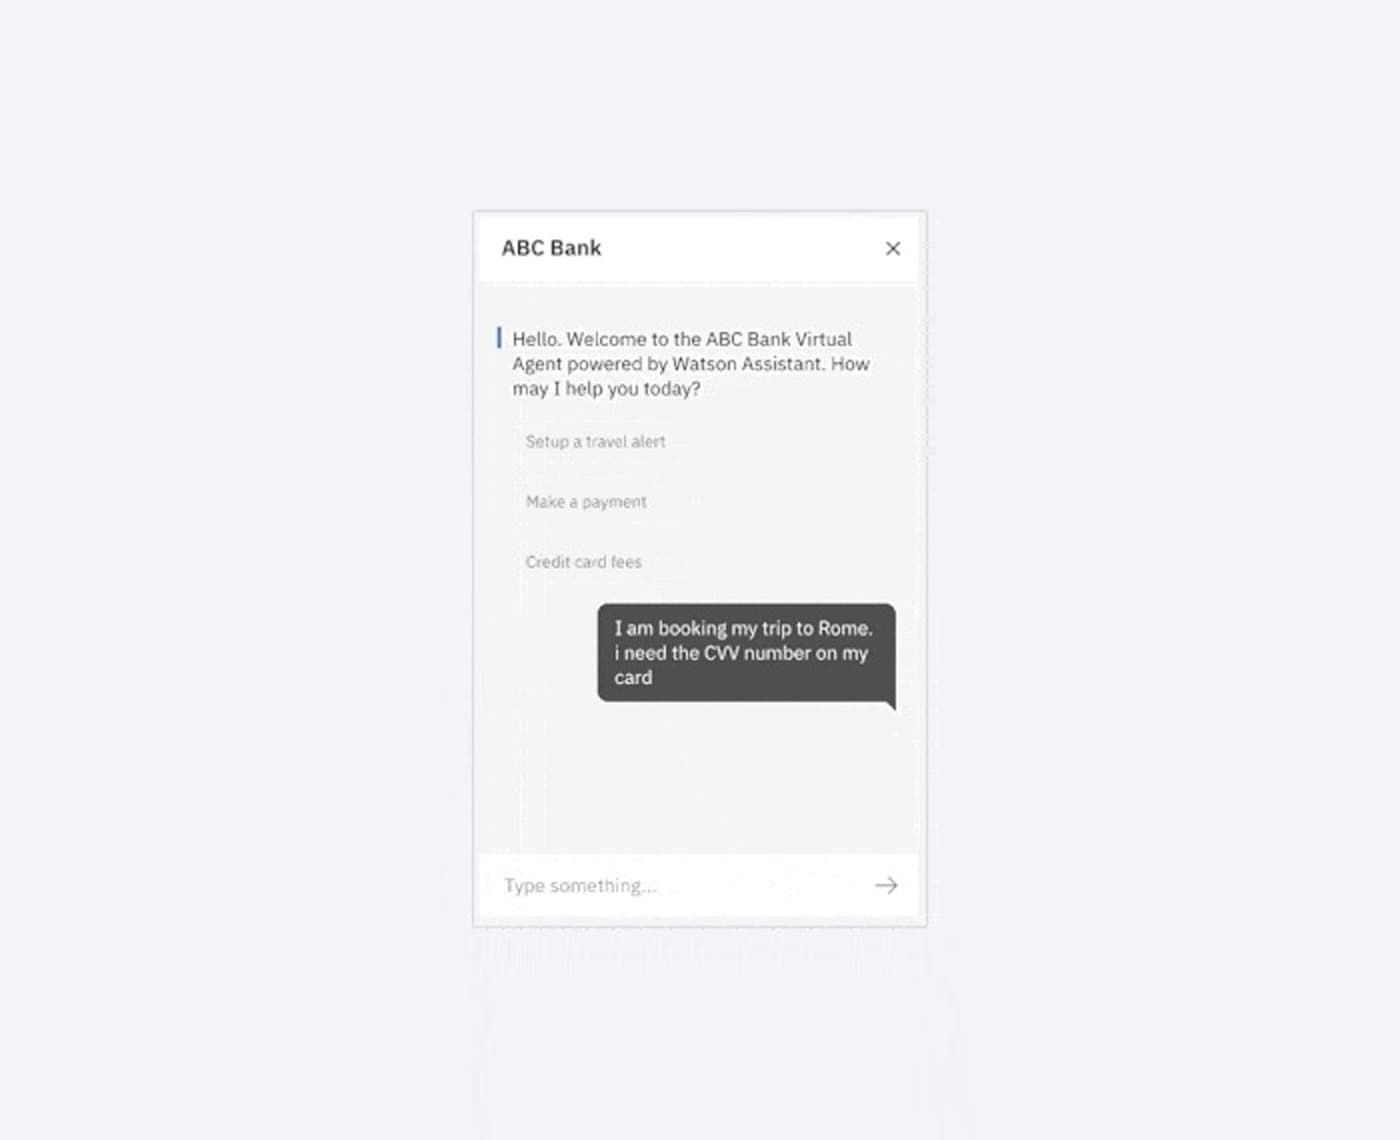 Graphic illustrations of a chatbot interface